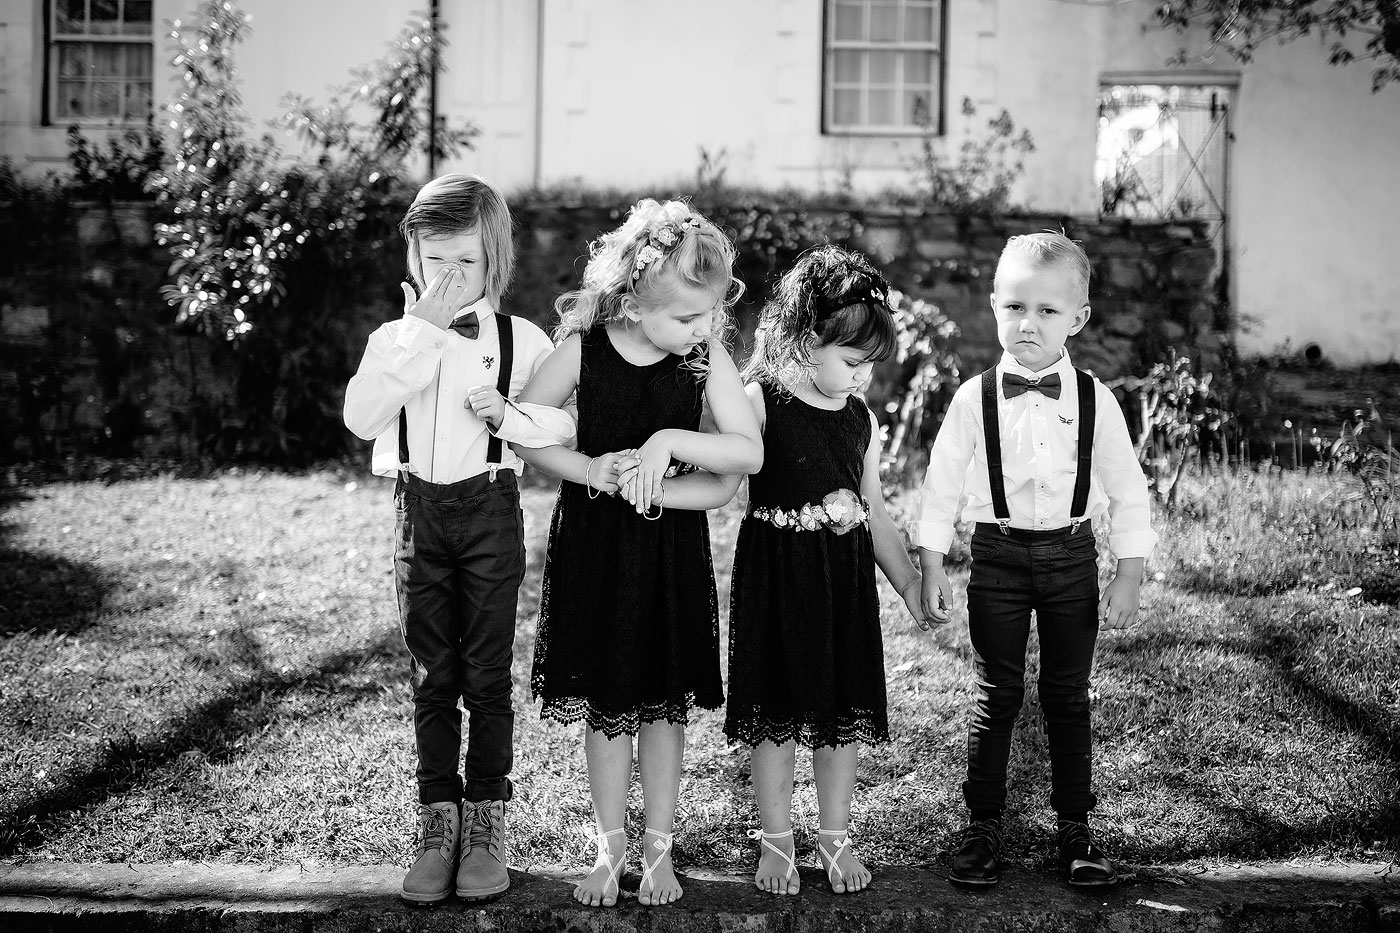 Creative and funny moment between kids at wedding in the Overberg